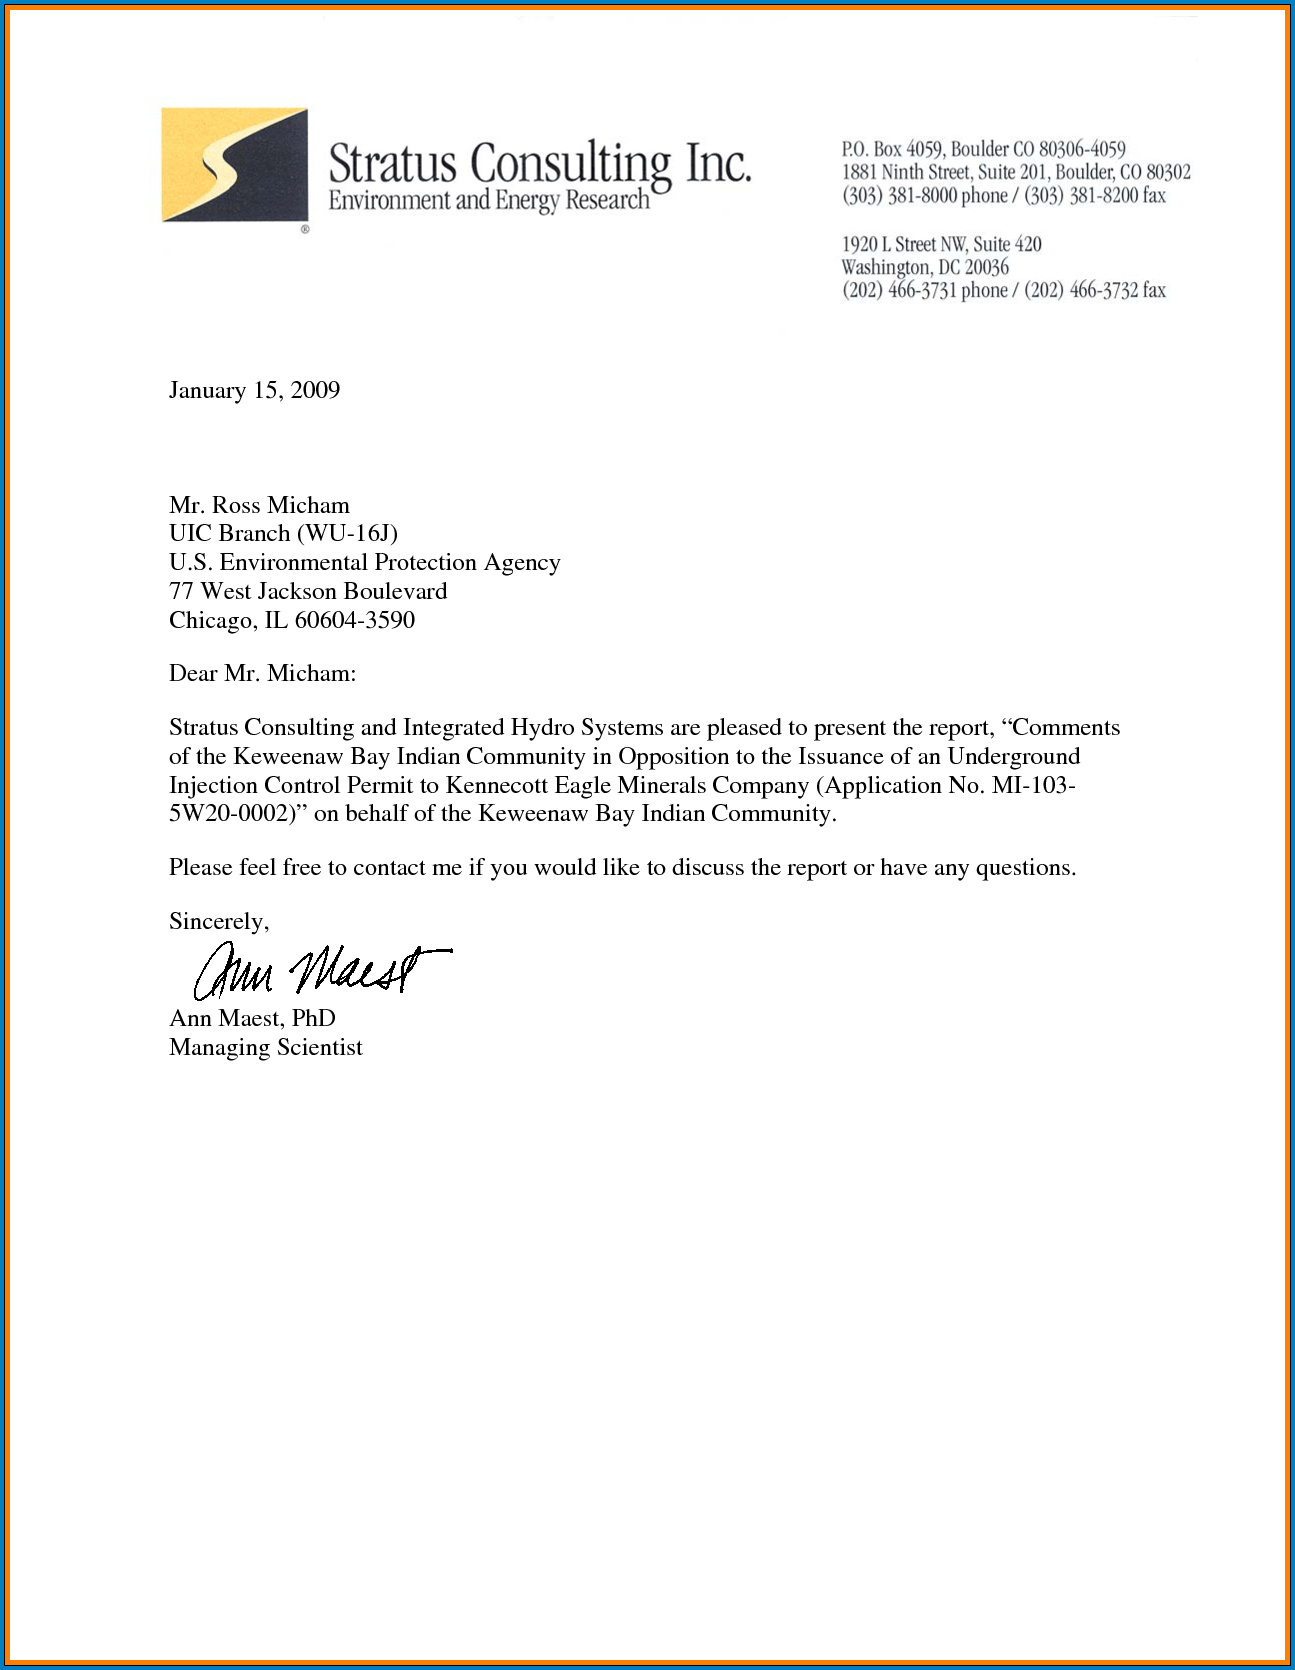 Formal Business Letter Template Example